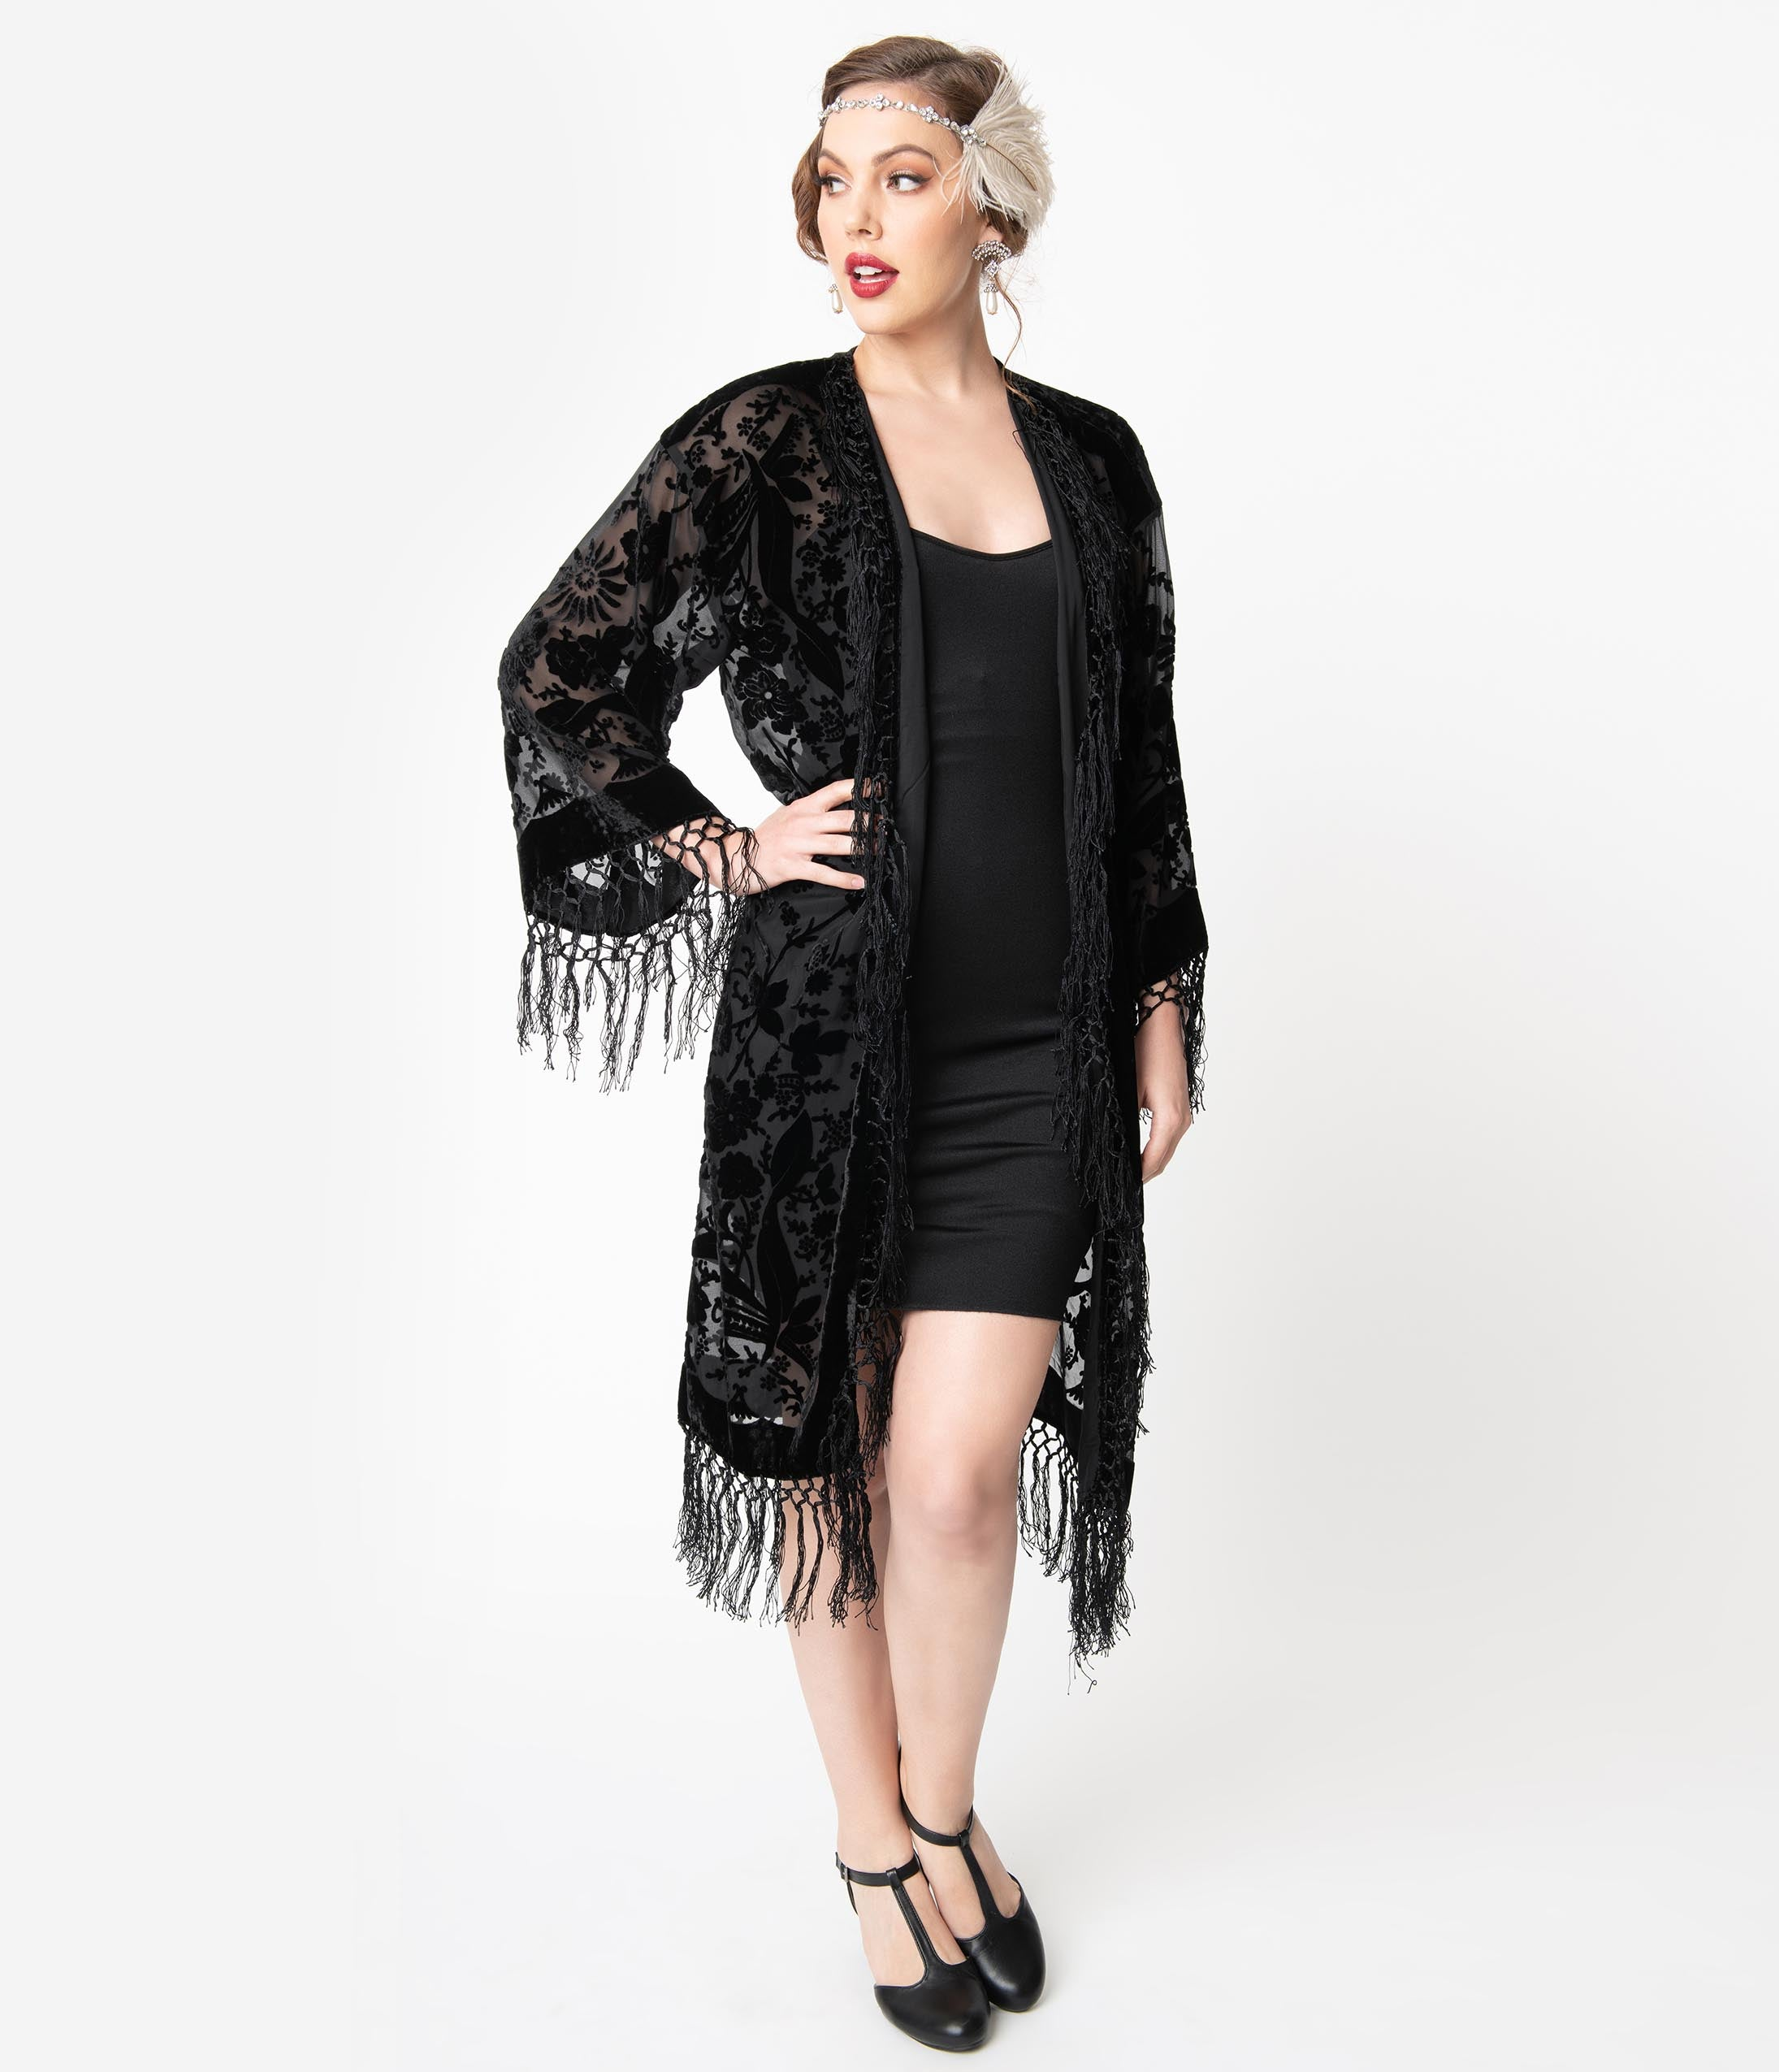 Vintage Coats & Jackets | Retro Coats and Jackets 1920S Style Black Devore Velvet Fringe Long Flapper Coat $194.00 AT vintagedancer.com